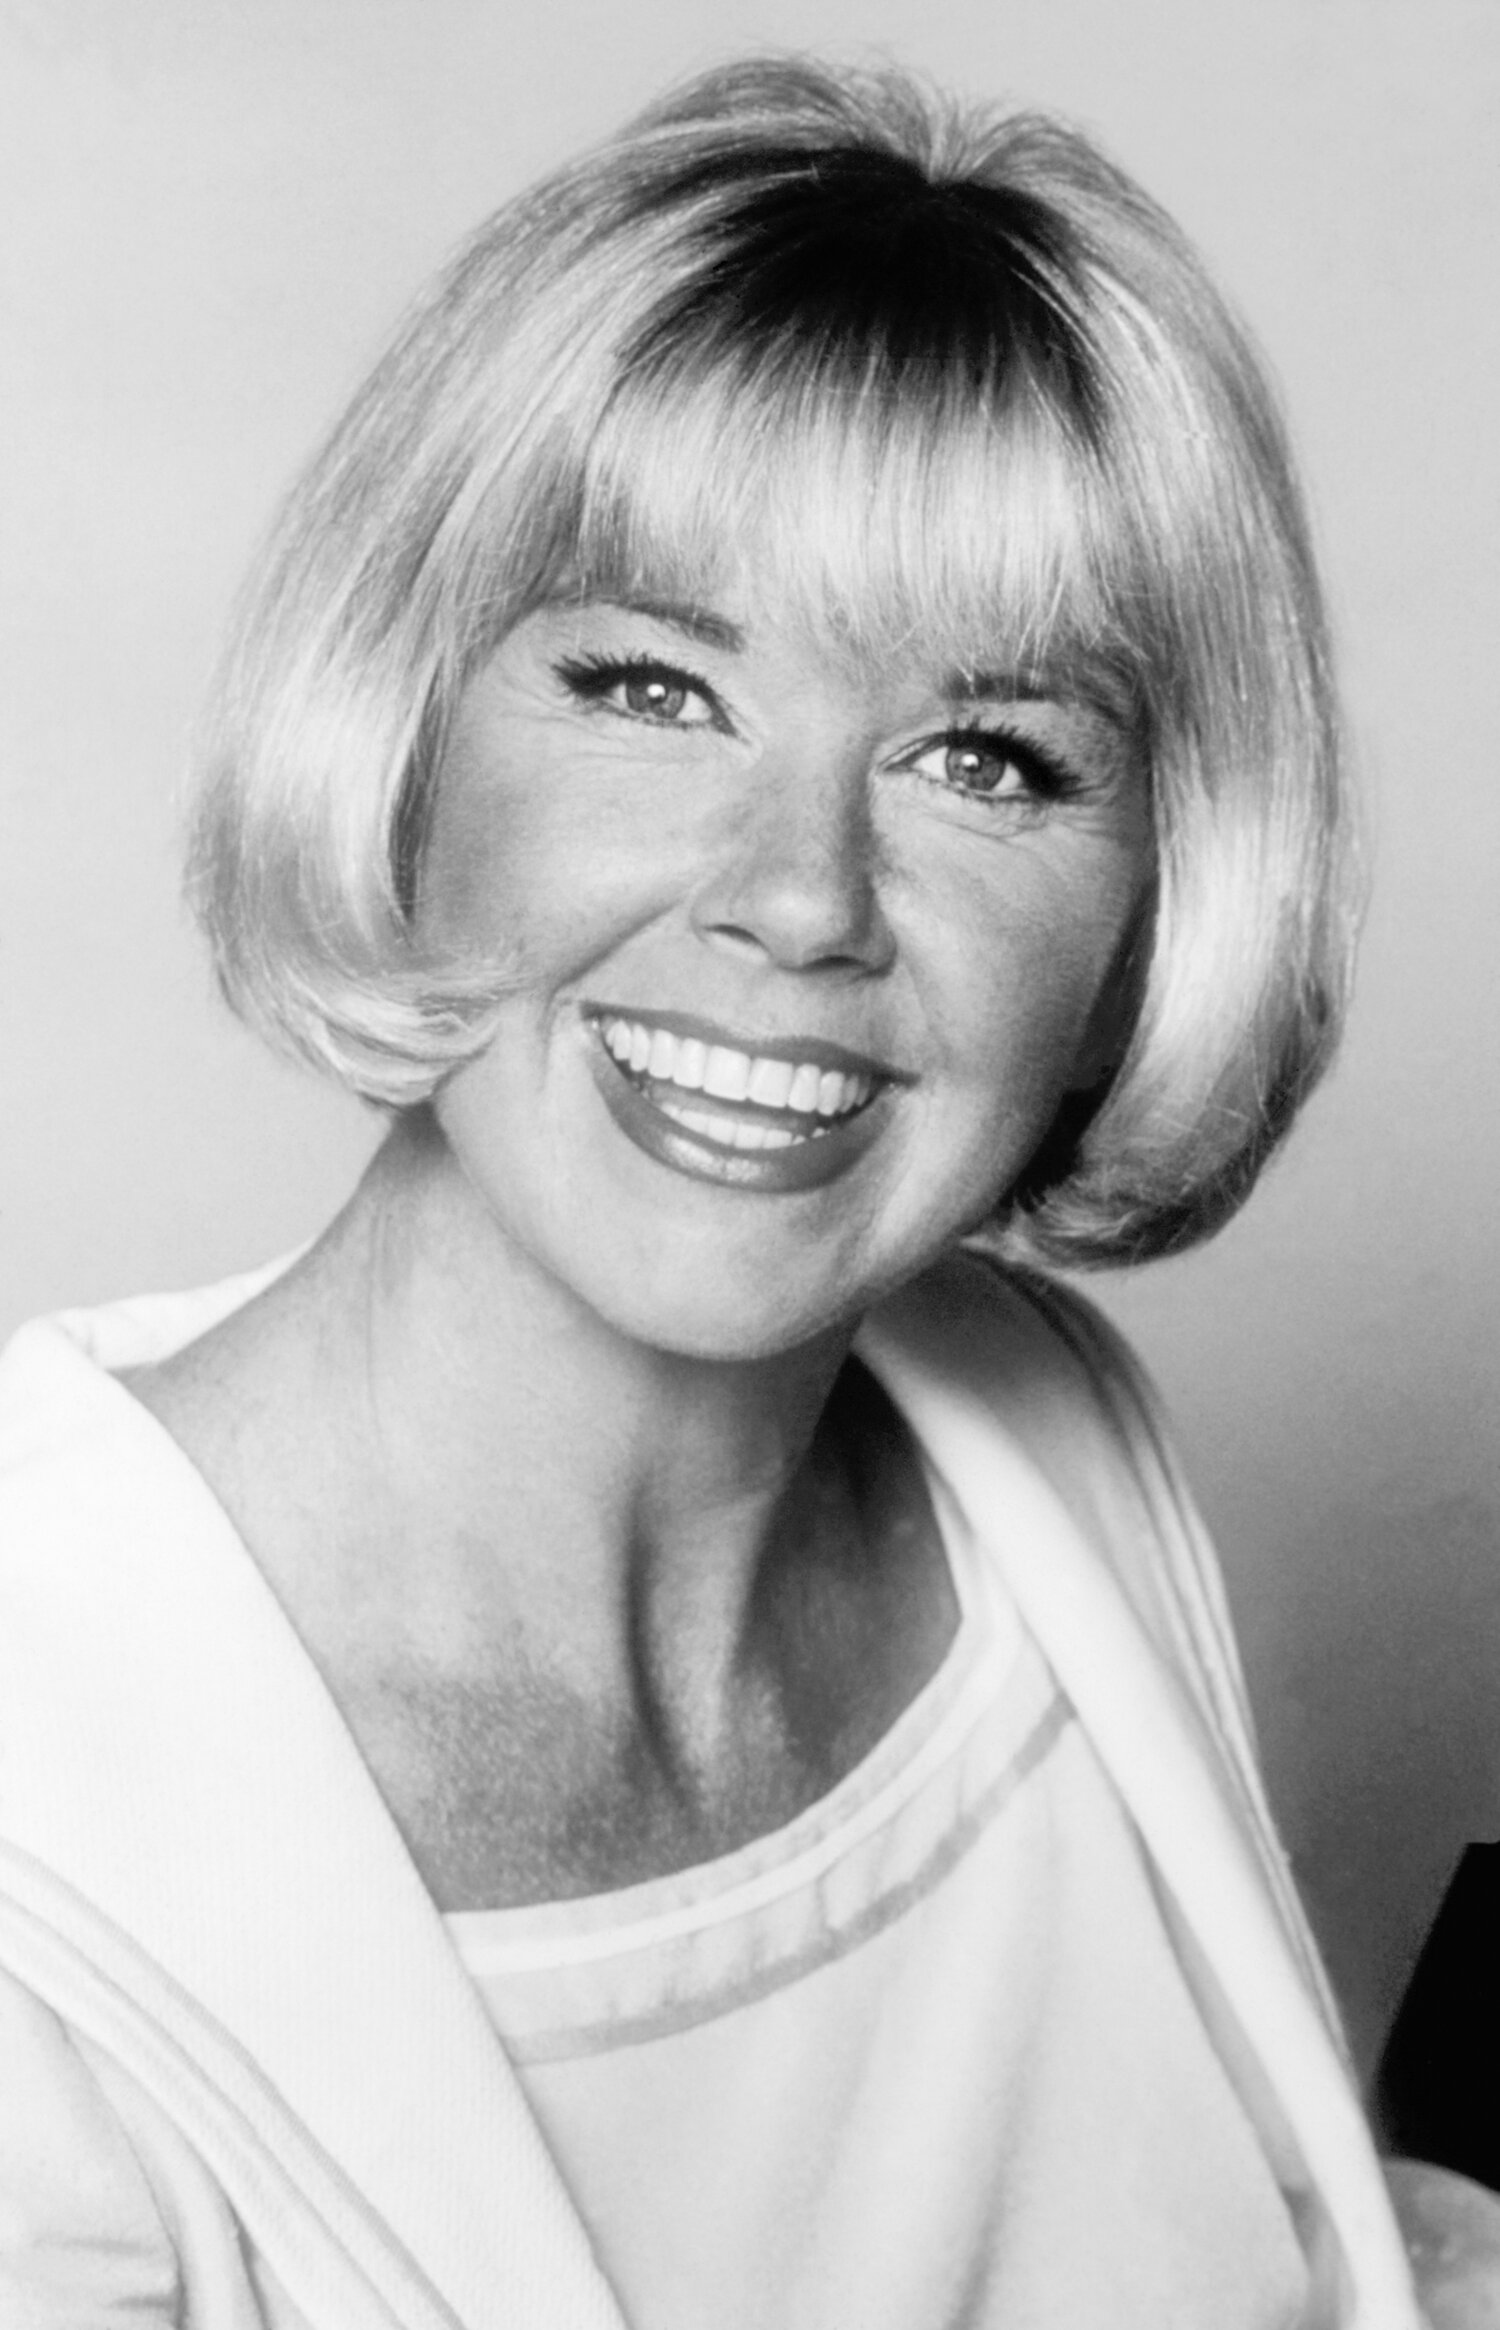 Newbridge singles - Meet Newbridge lonely people in Ireland